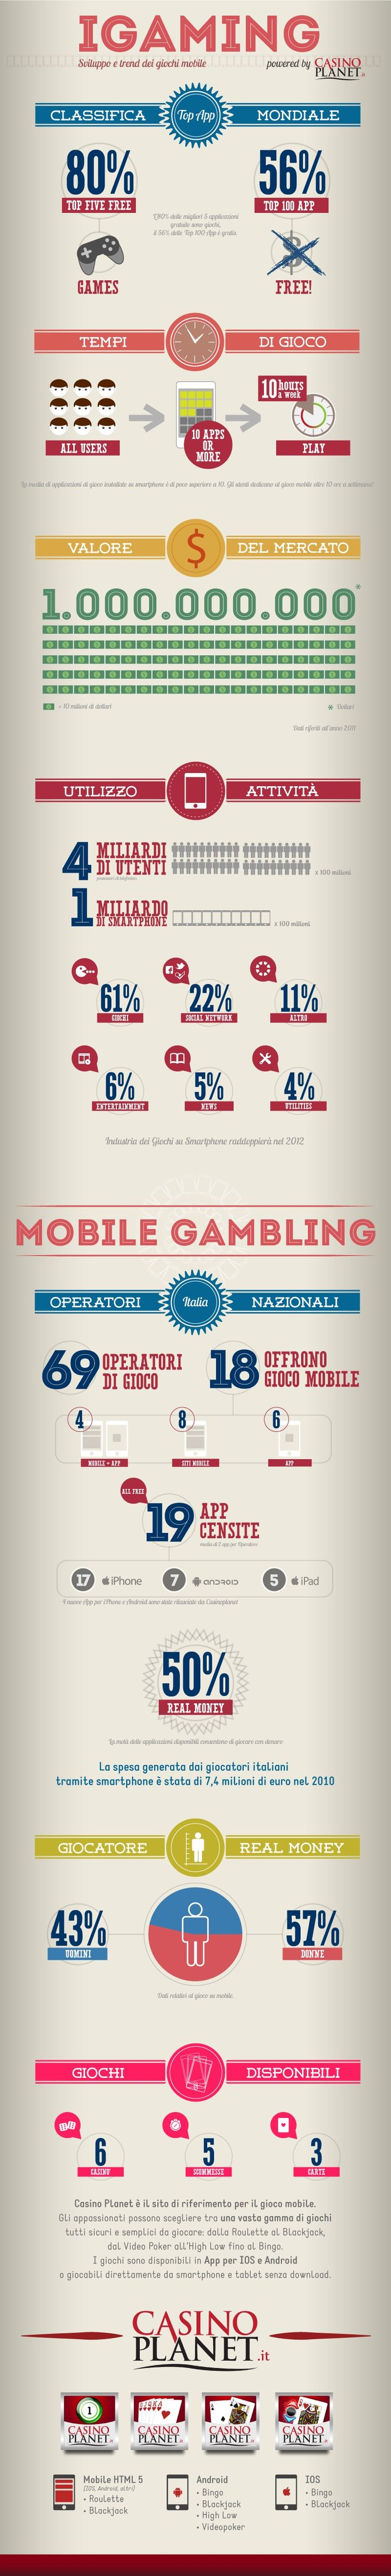 infographic igaming